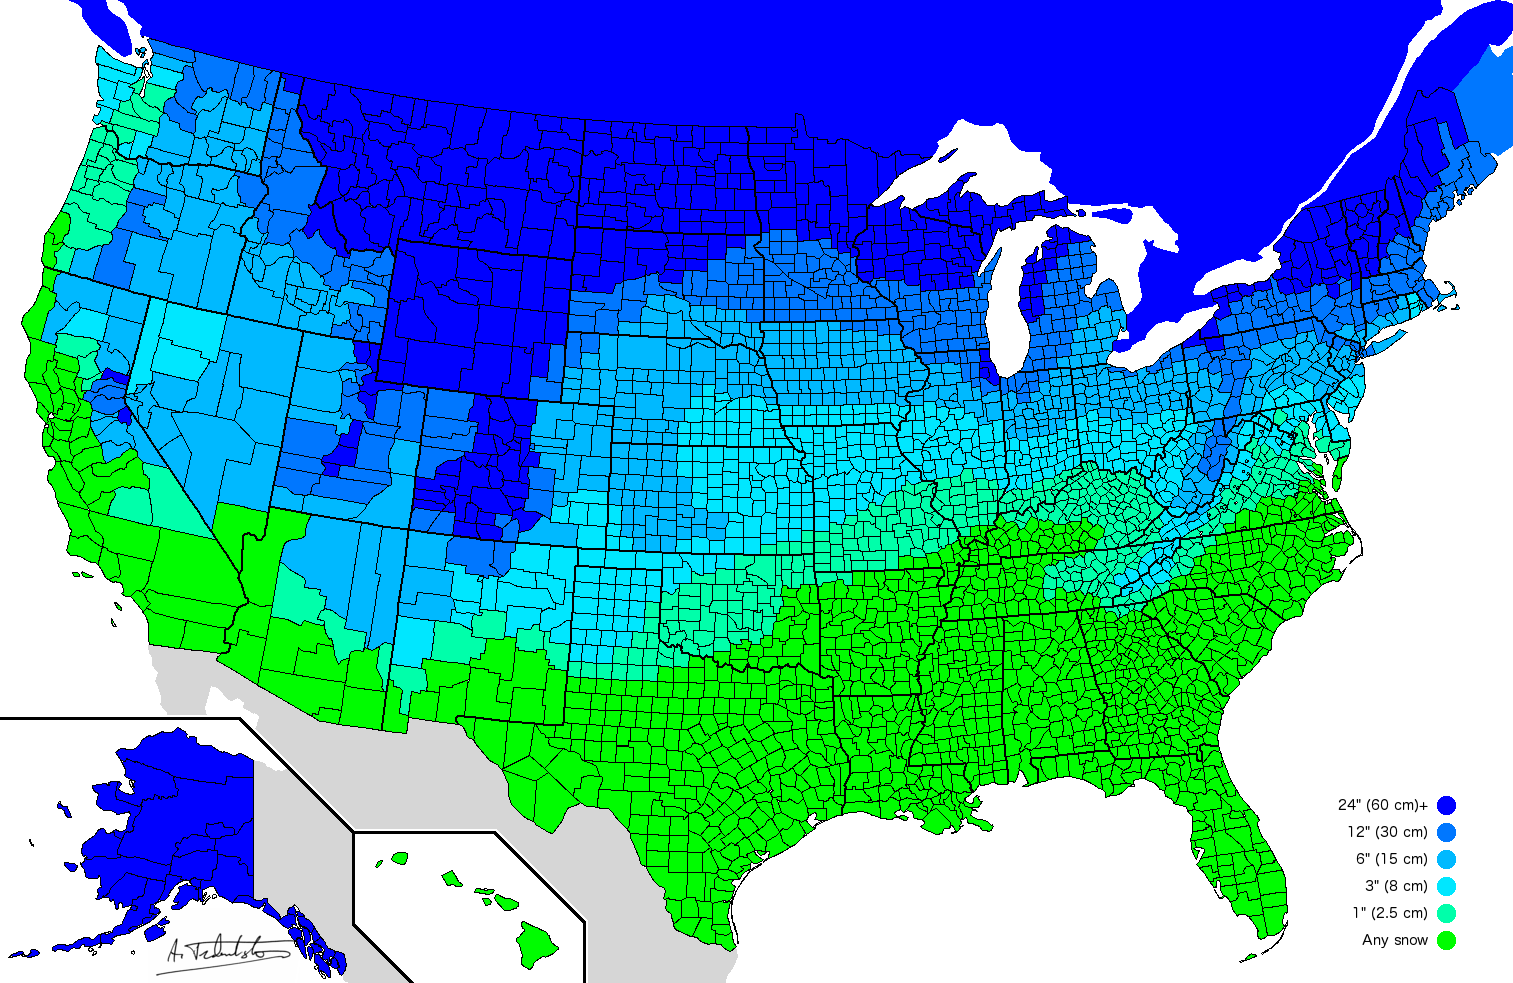 Here S How Much Snow It Takes To Get A Snow Day In Every Part Of The Country